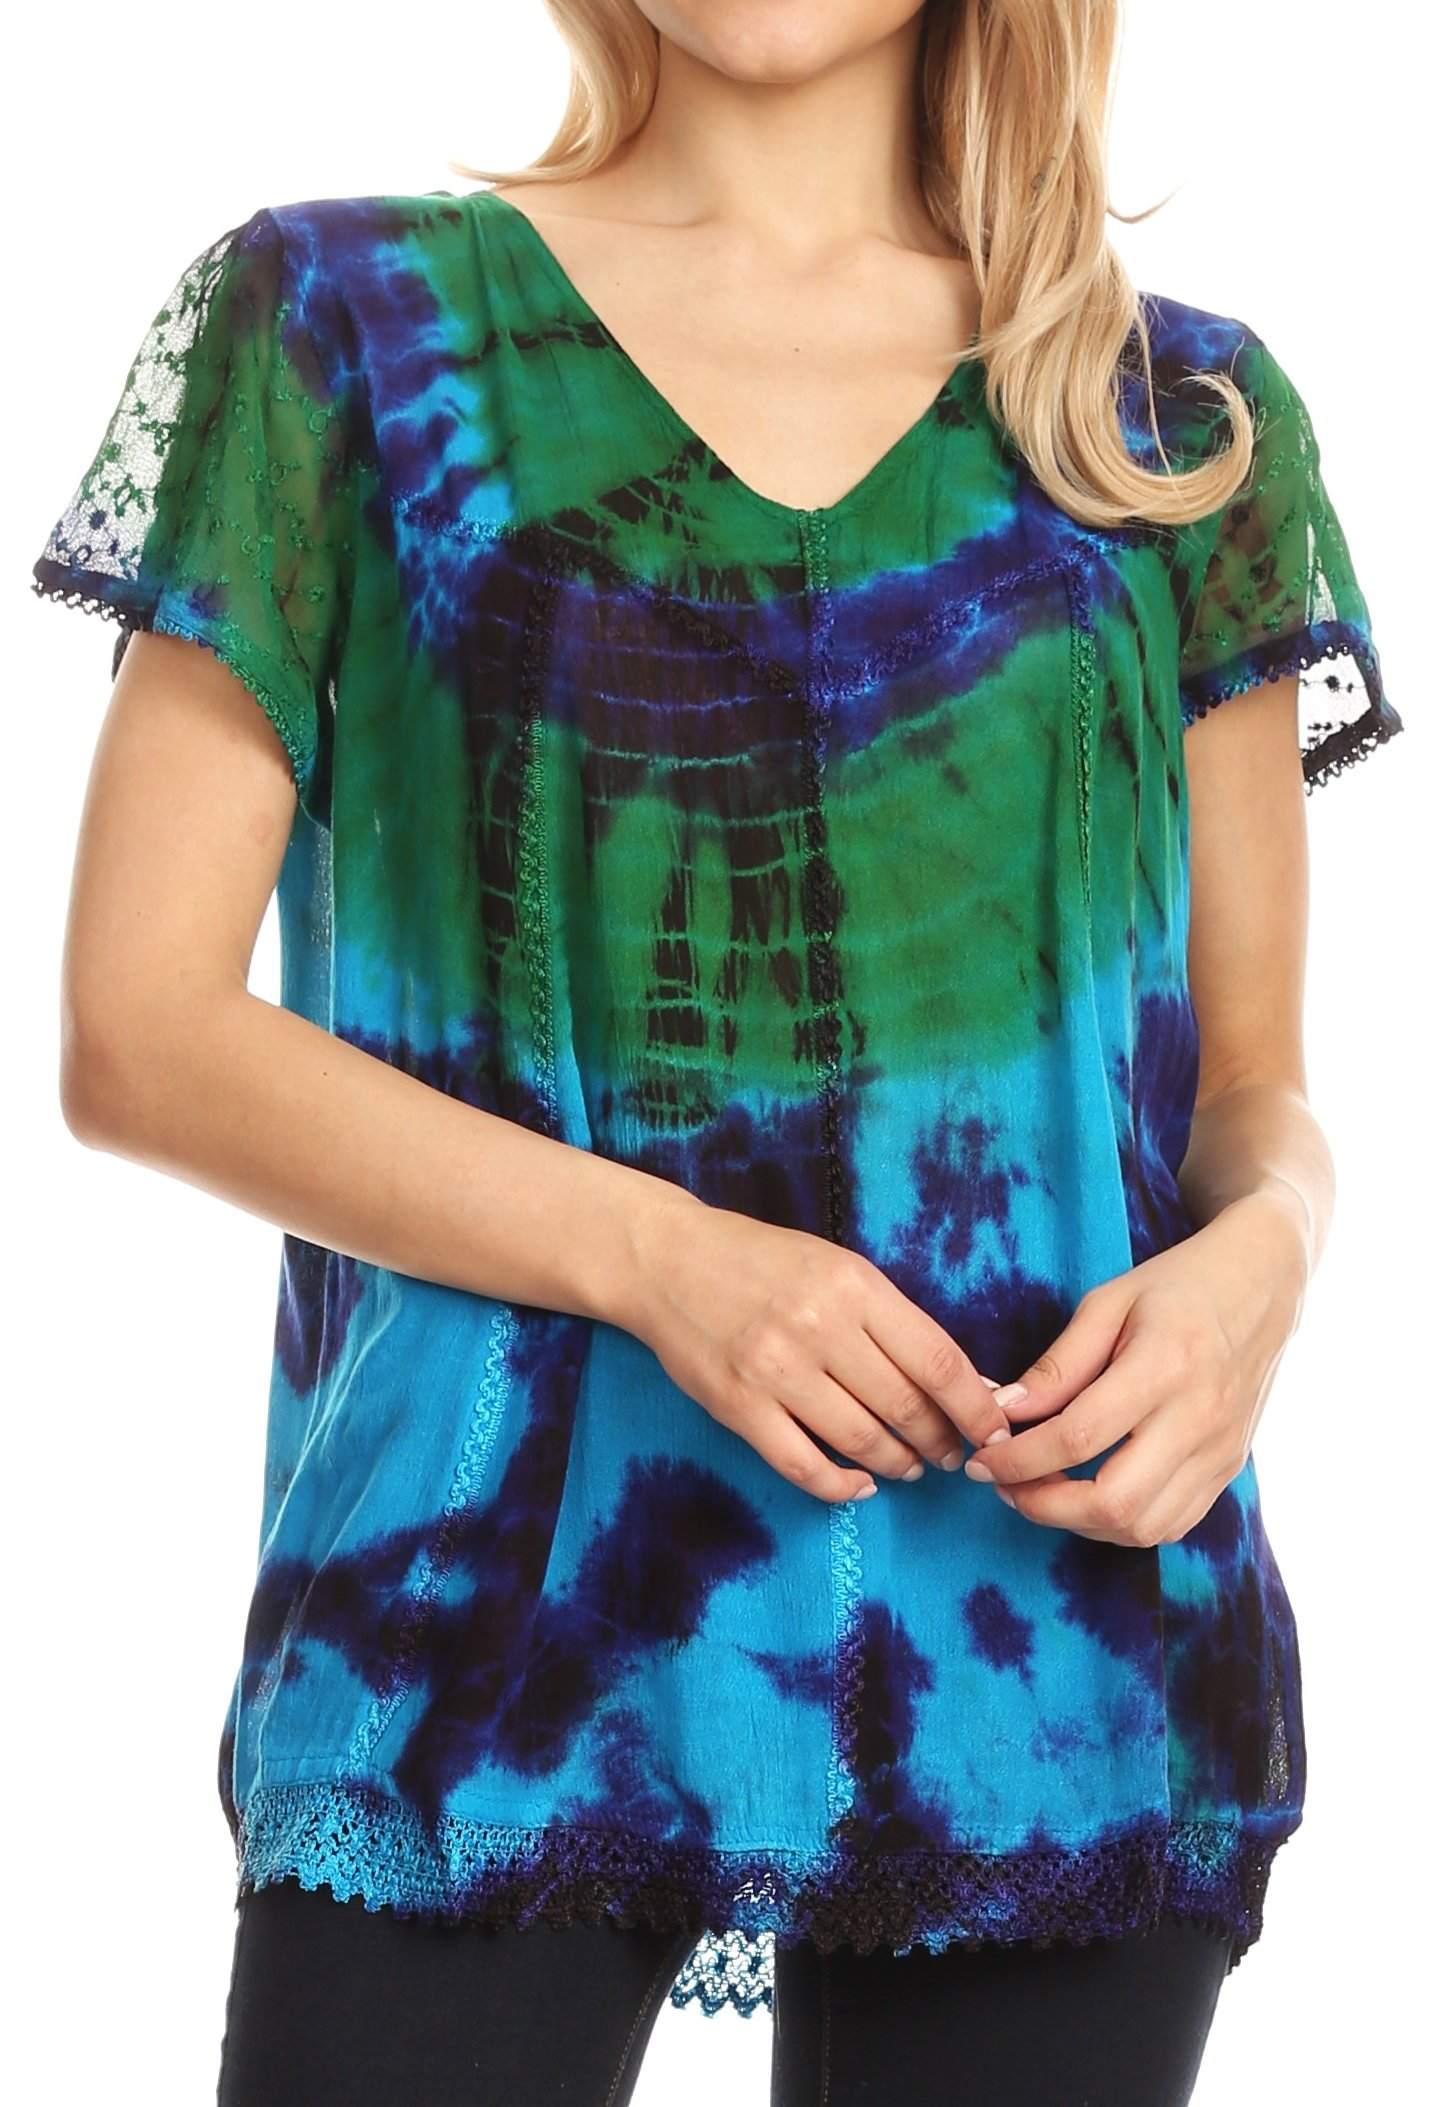 Sakkas 17787 - Josea Relaxed Fit Tie Dye Embroidered Crepe Cap Sleeve Blouse | Cover up - Turquoise/Green - OSP